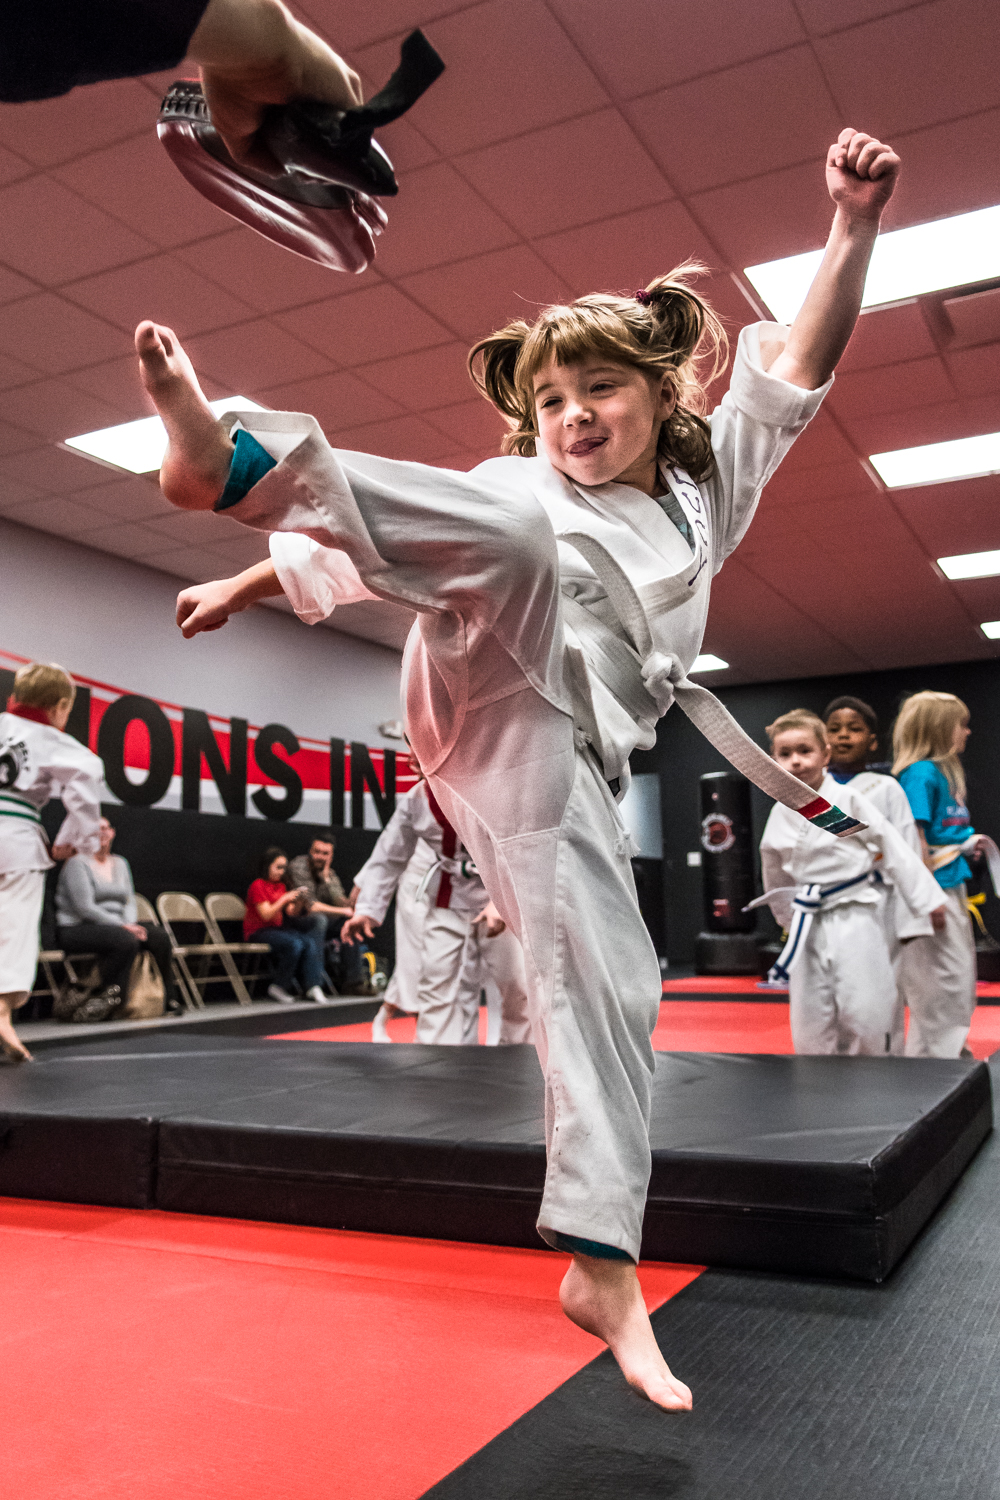 Five year old Lucy Worrell, Racine, soars into the air for a jump kick as she participates in her Little Dragons Karate class at Black Belt Karate in downtown Racine Friday night.